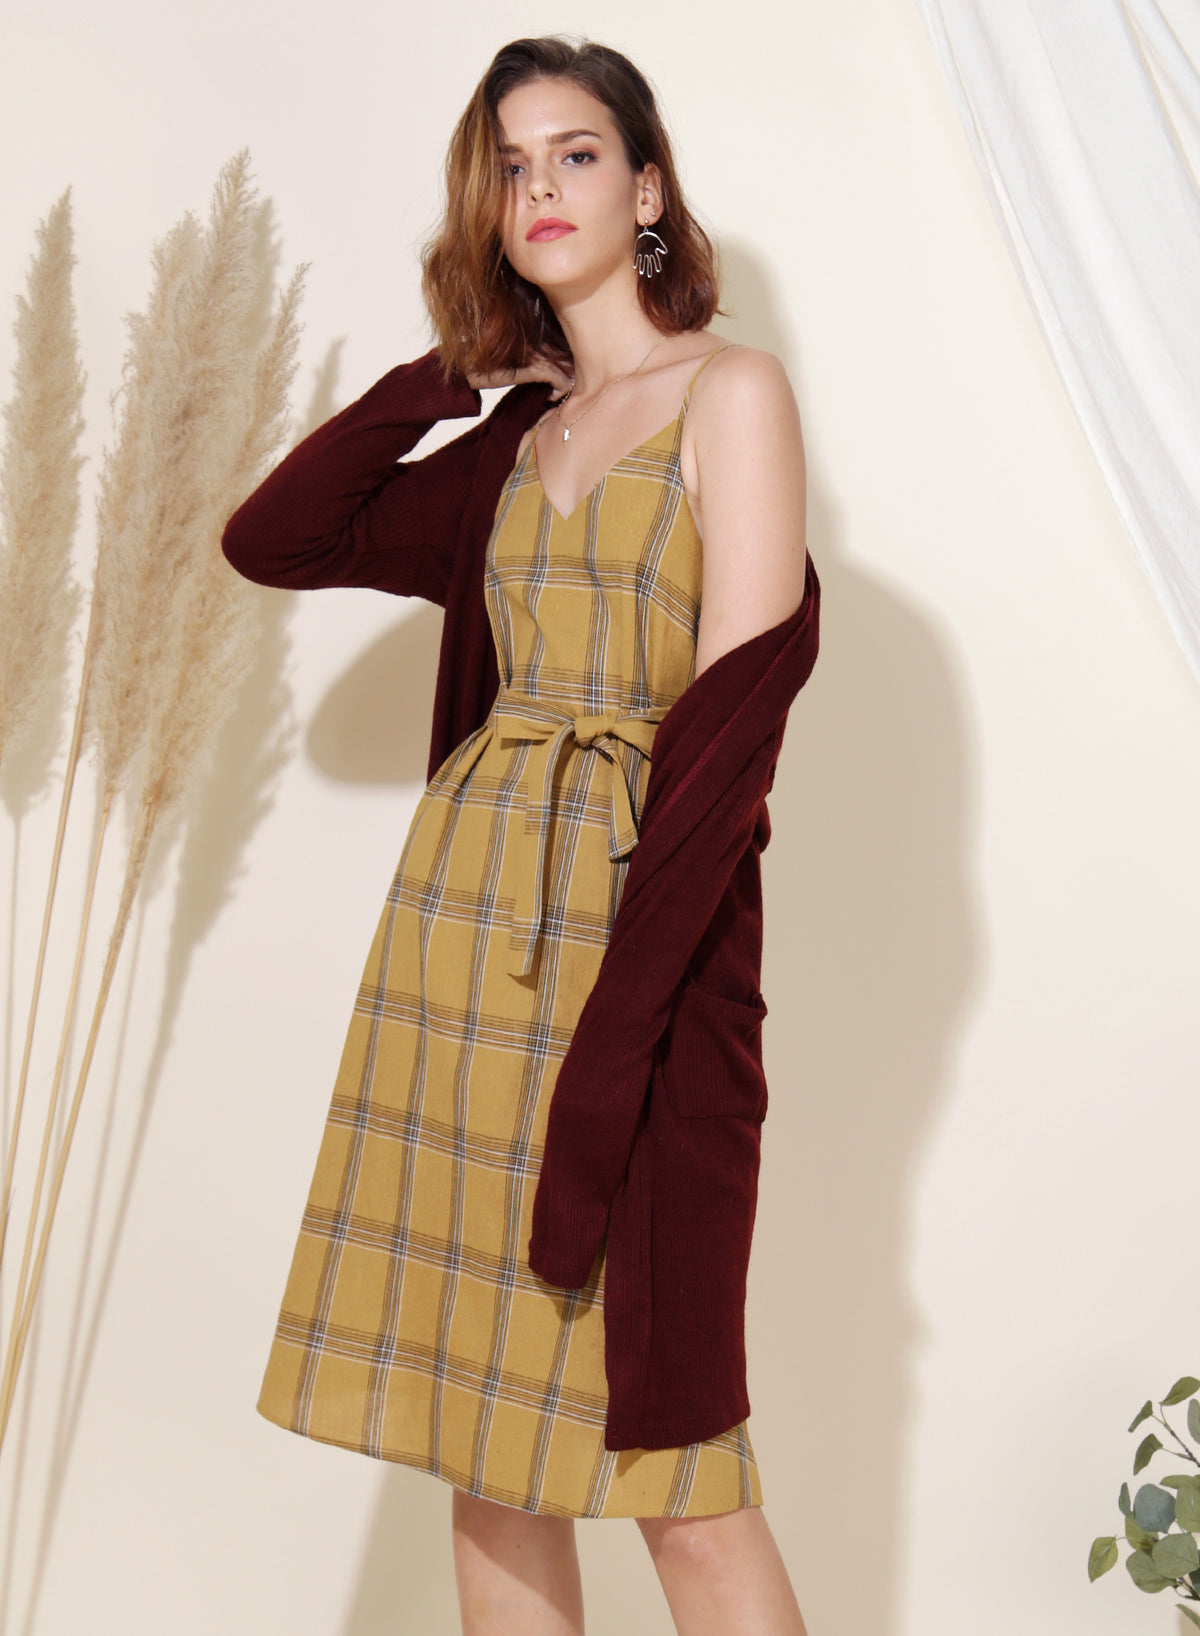 Boundless Checkered Slip Dress (Mustard) at $ 41.50 only sold at And Well Dressed Online Fashion Store Singapore